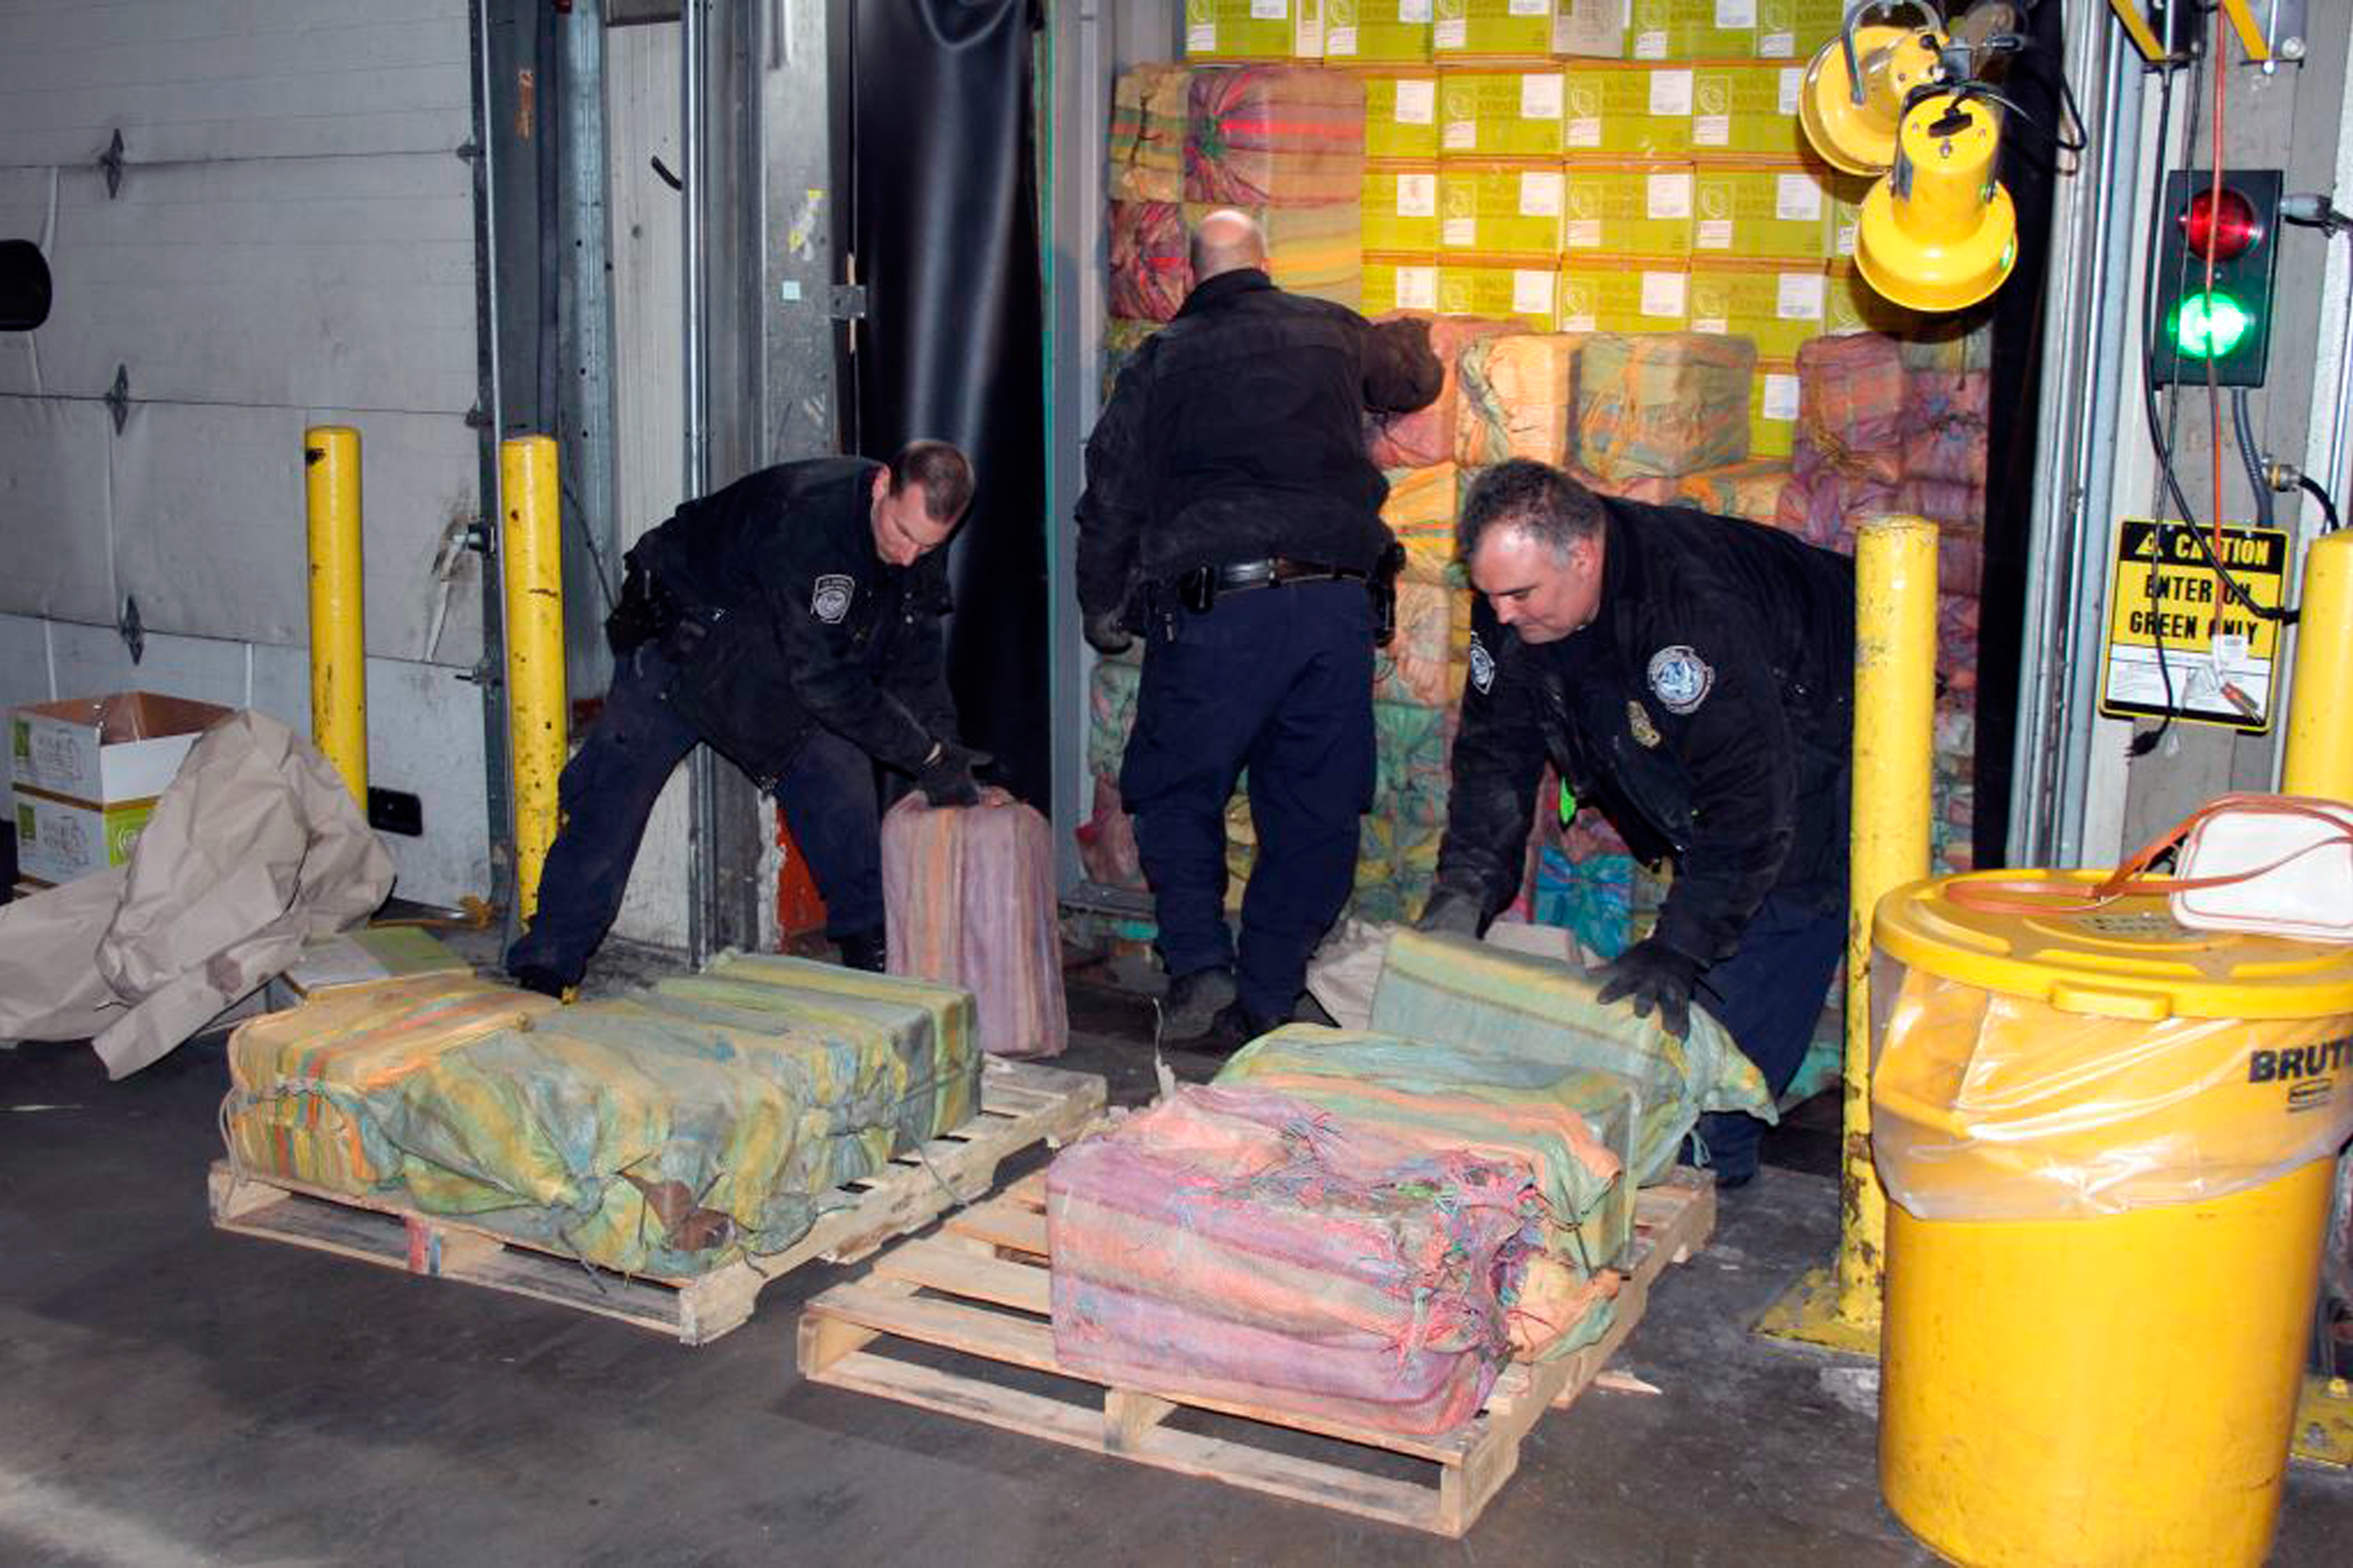 Authorities Seize 3,200 Pounds of Cocaine In Massive Drug